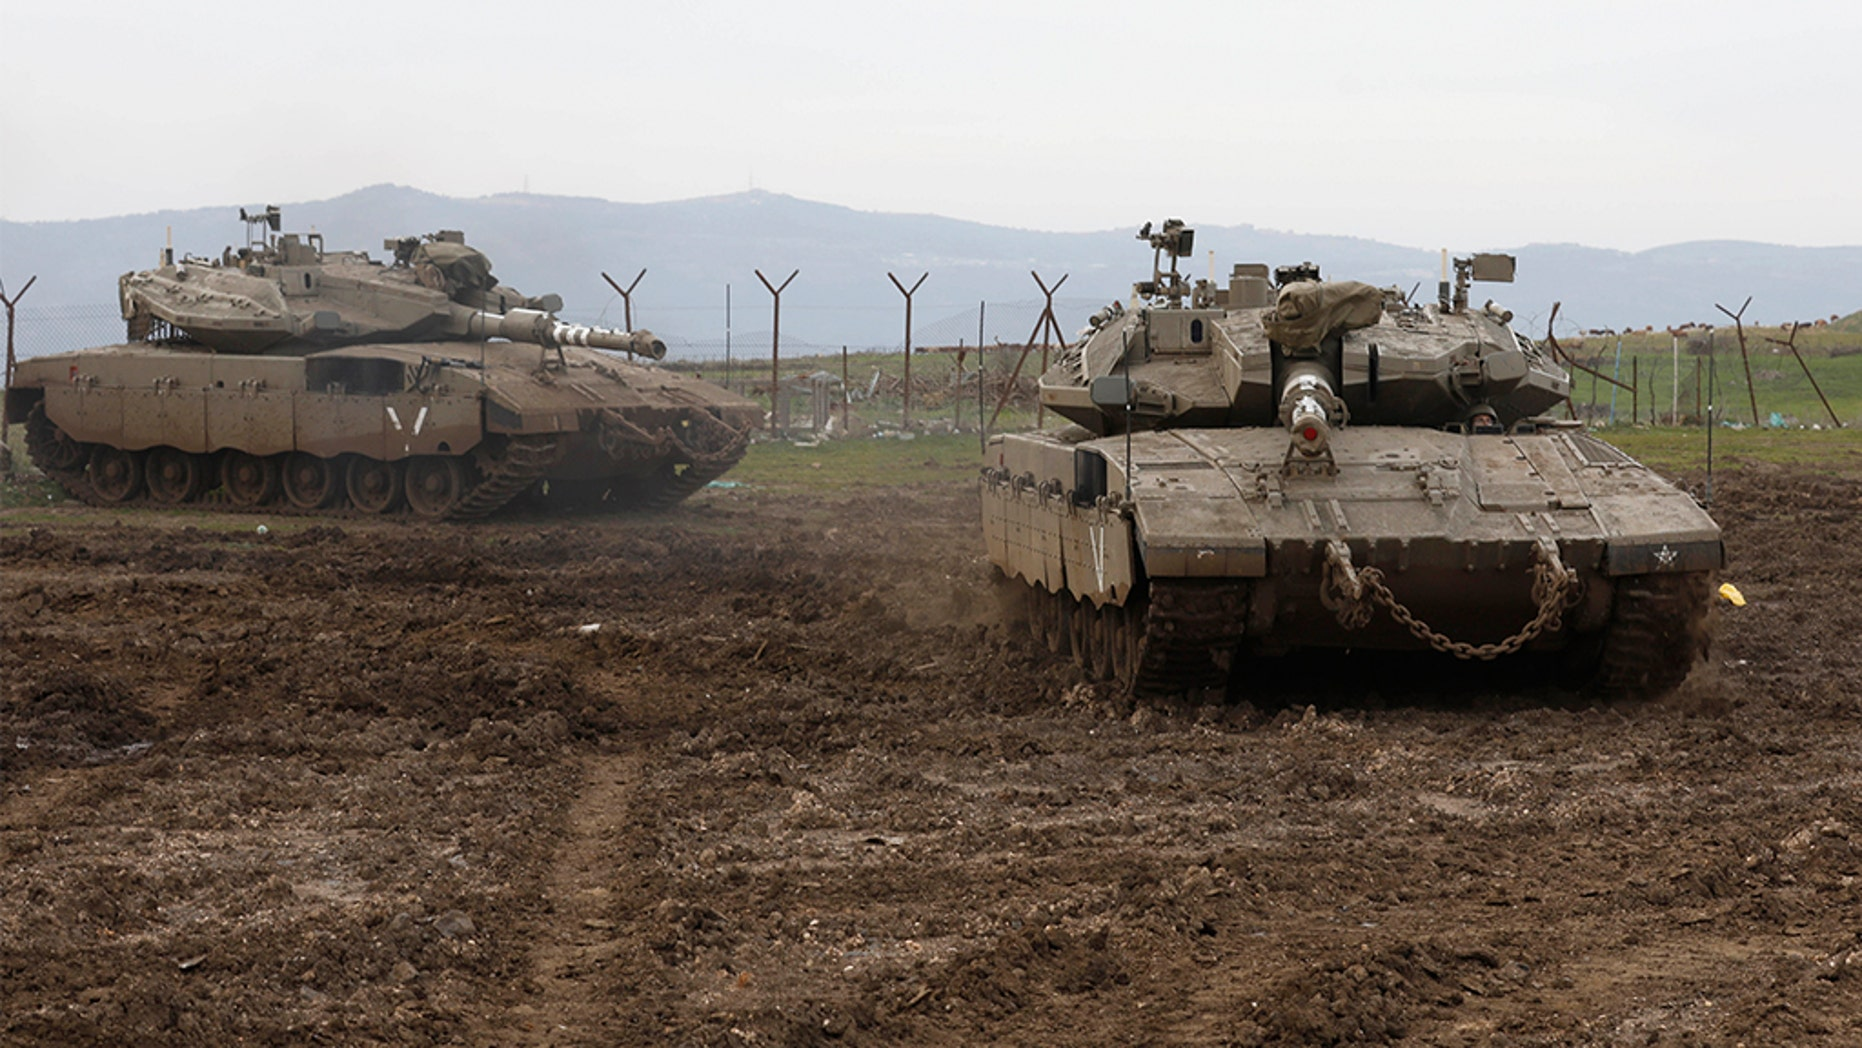 Israeli army Merkava tanks gather in the Israeli-annexed Golan Heights, on January 20, 2019. (Photo by JALAA MAREY / AFP) (Photo credit should read JALAA MAREY/AFP/Getty Images)